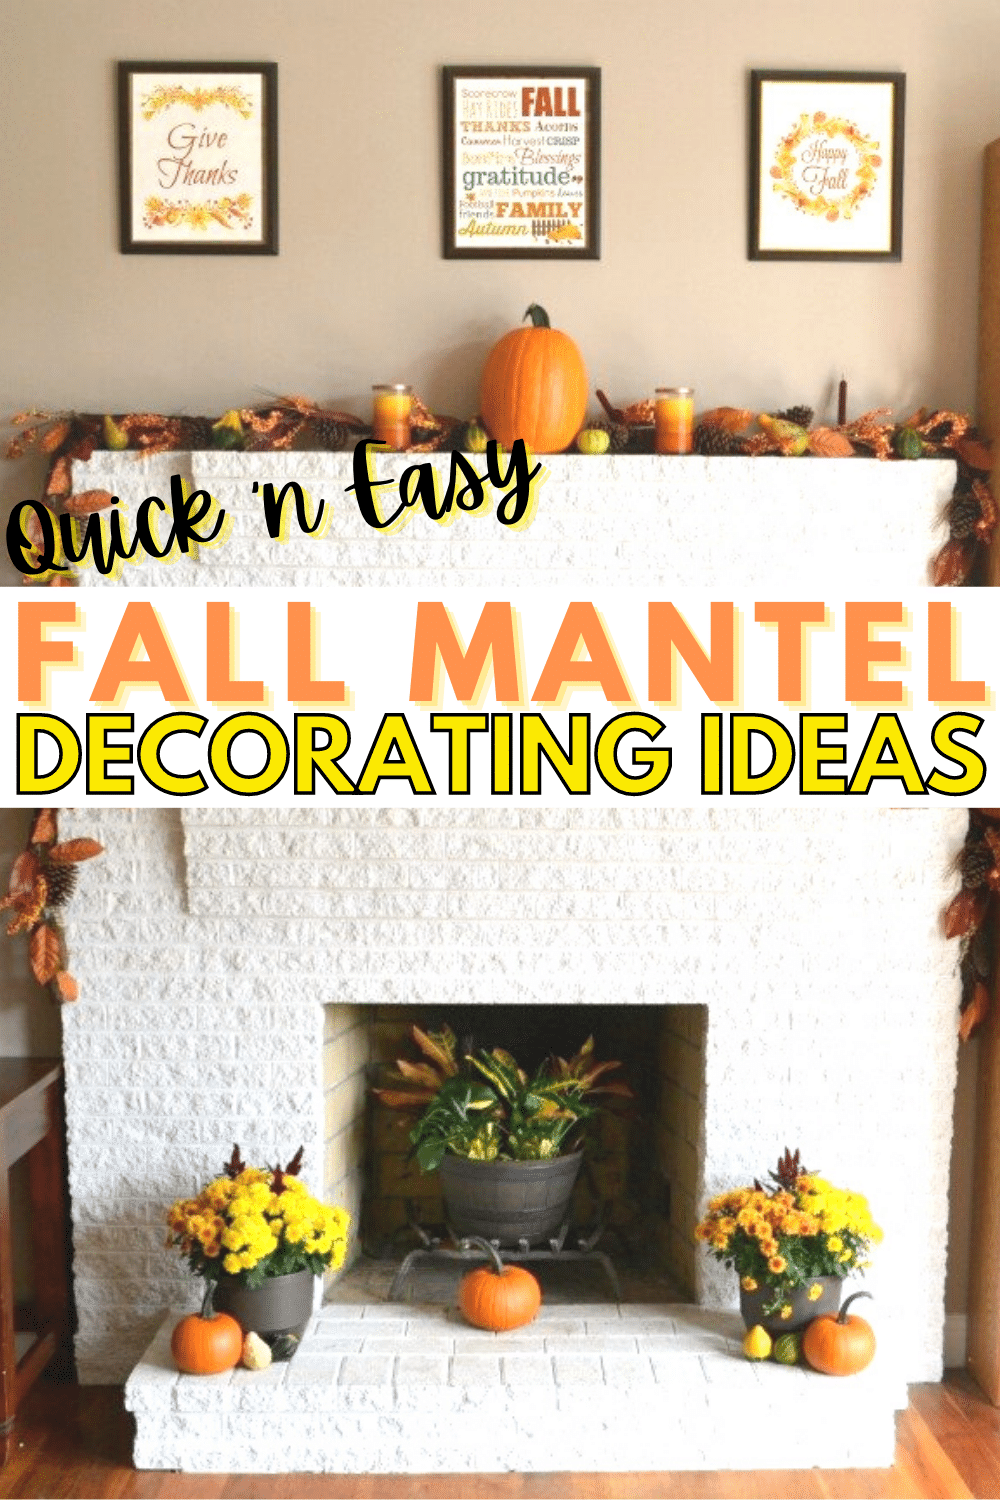 Transform the look of your home for autumn in a matter of minutes with these quick and easy fall mantel decorating ideas. #fall #decor #decorating #ideas via @wondermomwannab